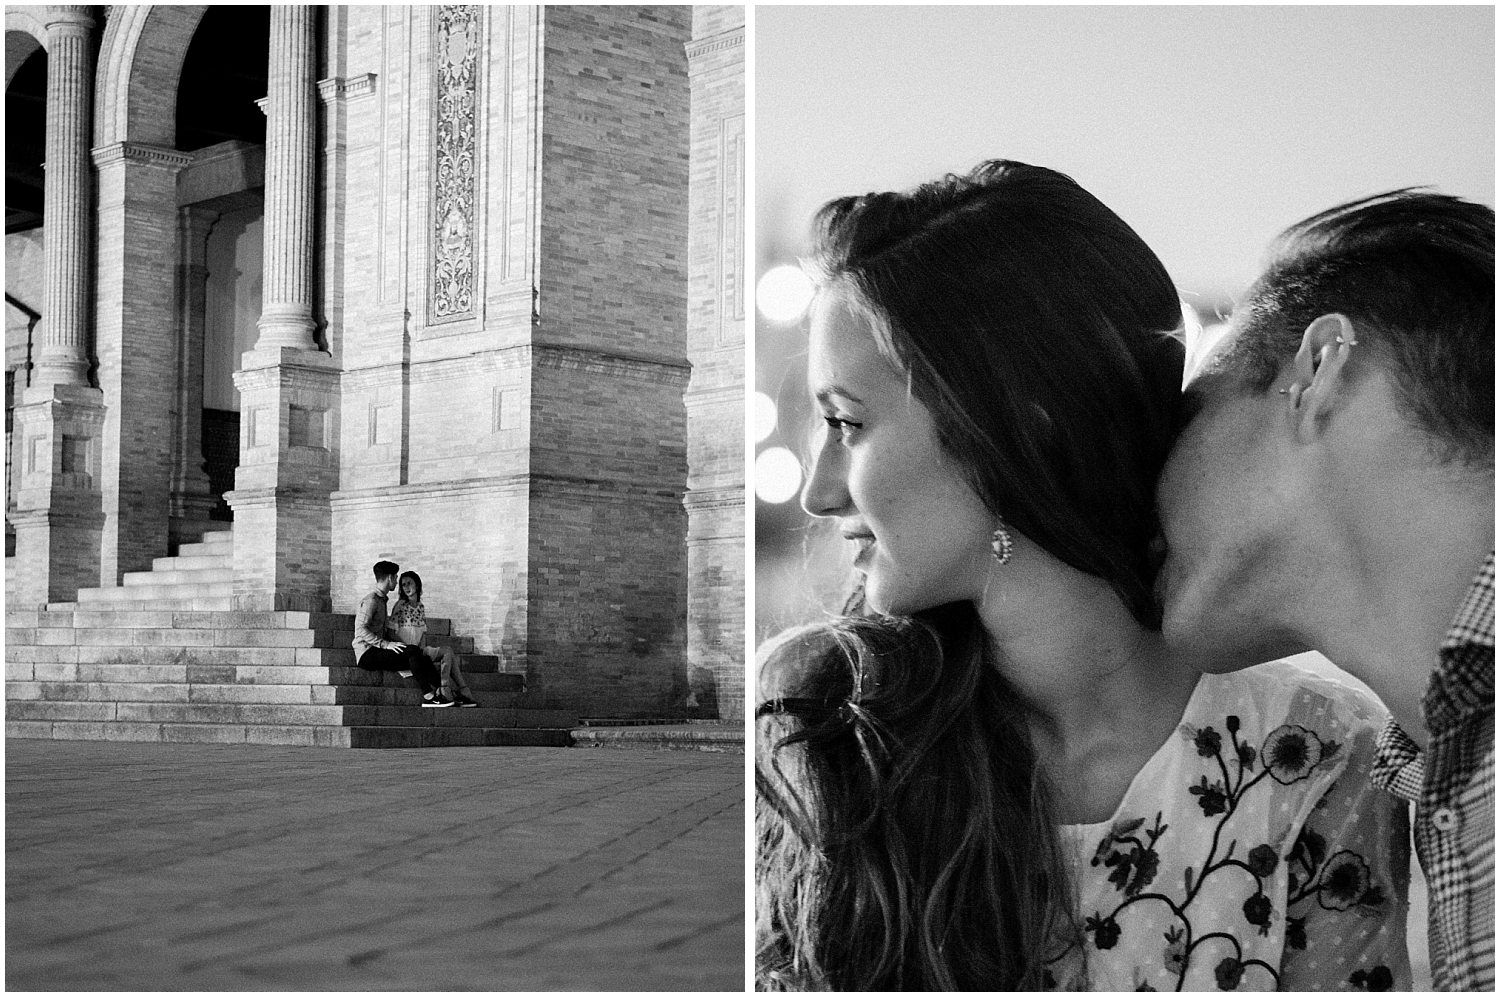 Gaetan_Jargot_Sevilla_engagement_session-9_W.jpg